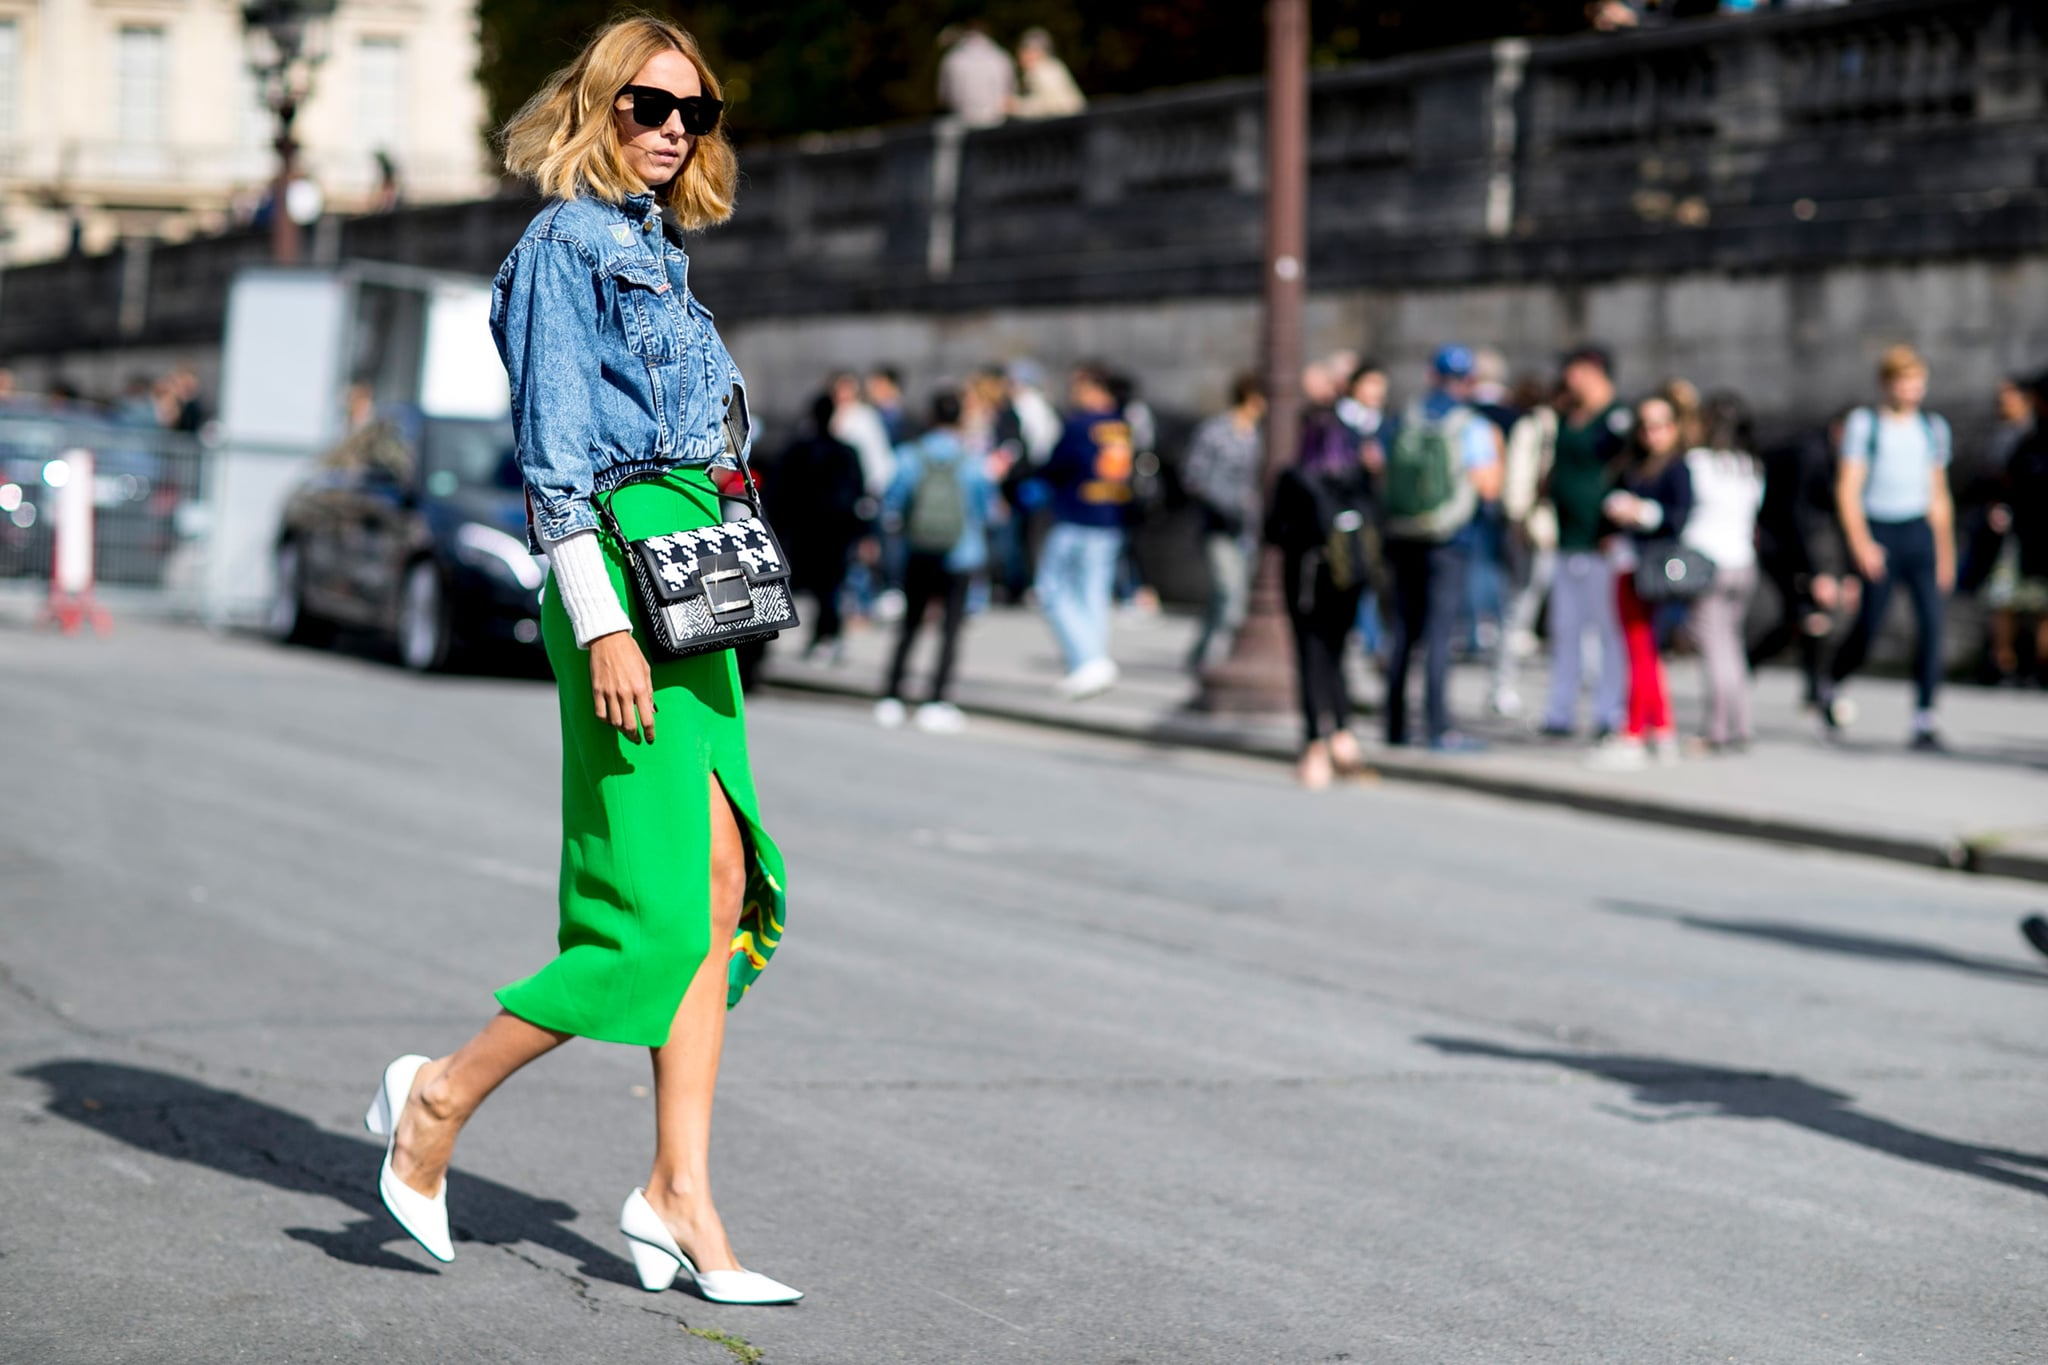 Sometimes reinventing your work outfit is as easy as swapping your blazer for a denim jacket and slipping into a high-octane hue.